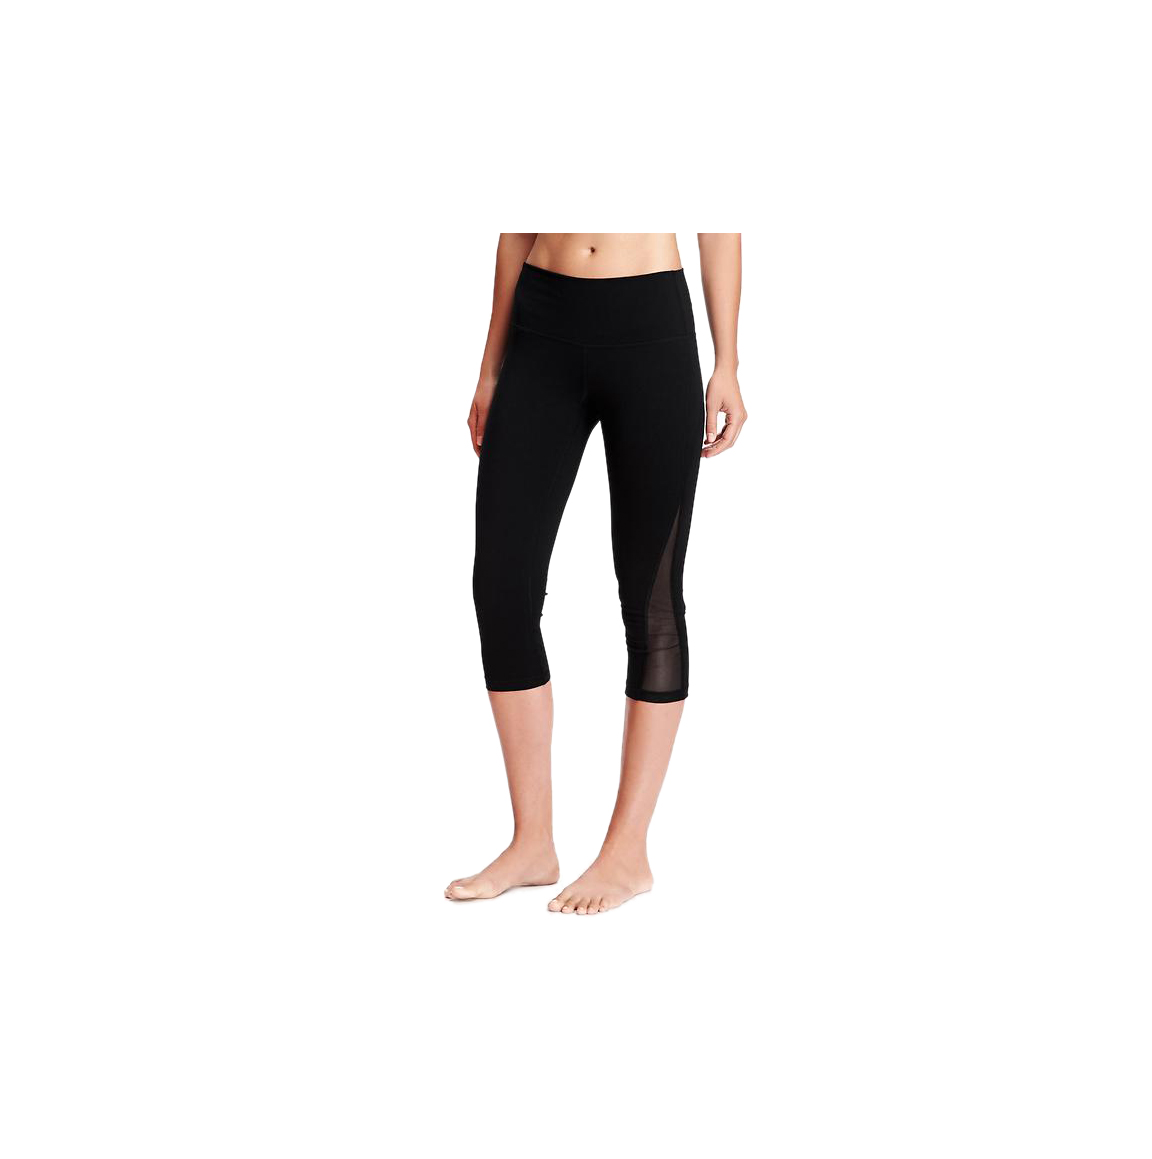 Old Navy Go-Dry Mid-Rise Mesh Yoga Crop